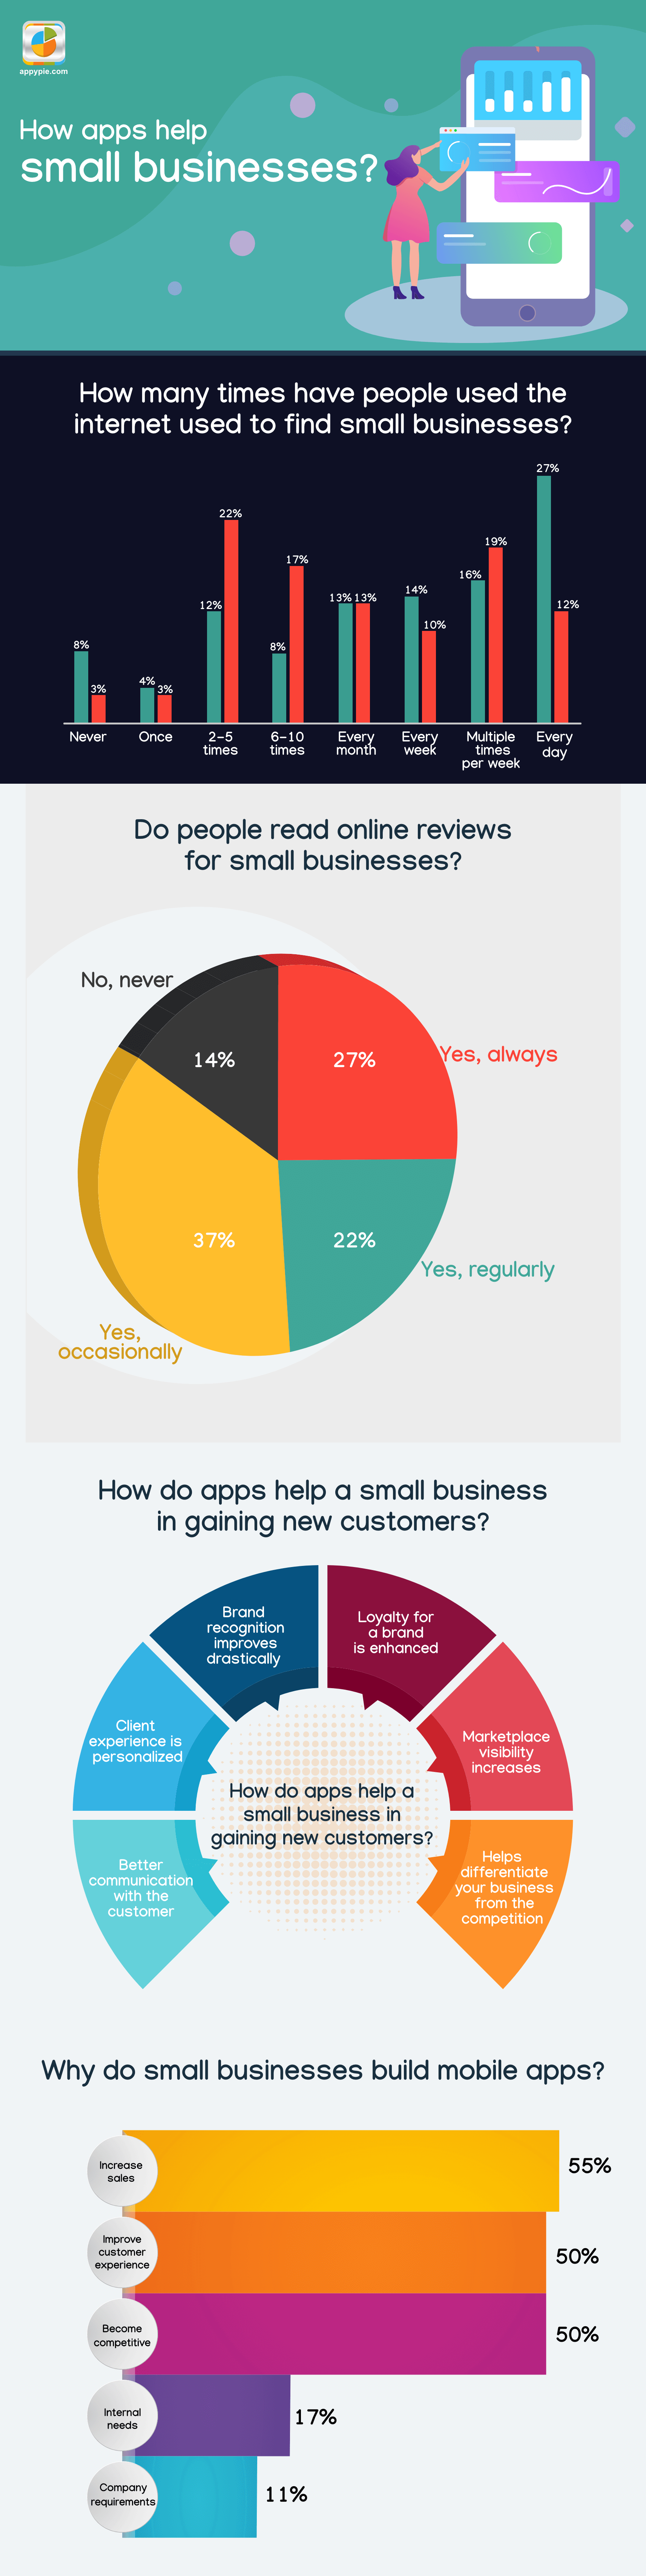 6 Small Businesses that can Benefit with Apps